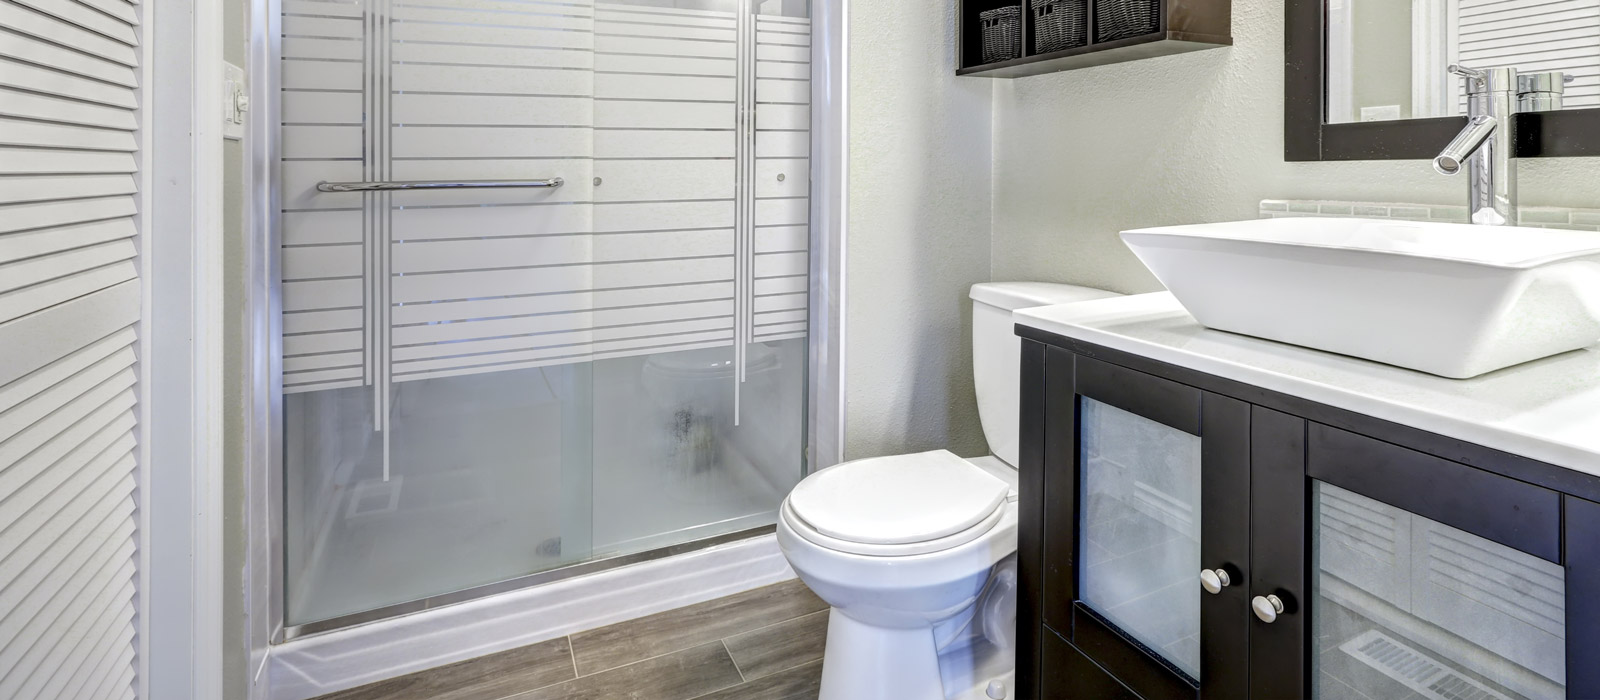 Plumbing services licensed plumber in st charles mo for Bathroom remodel plumbing